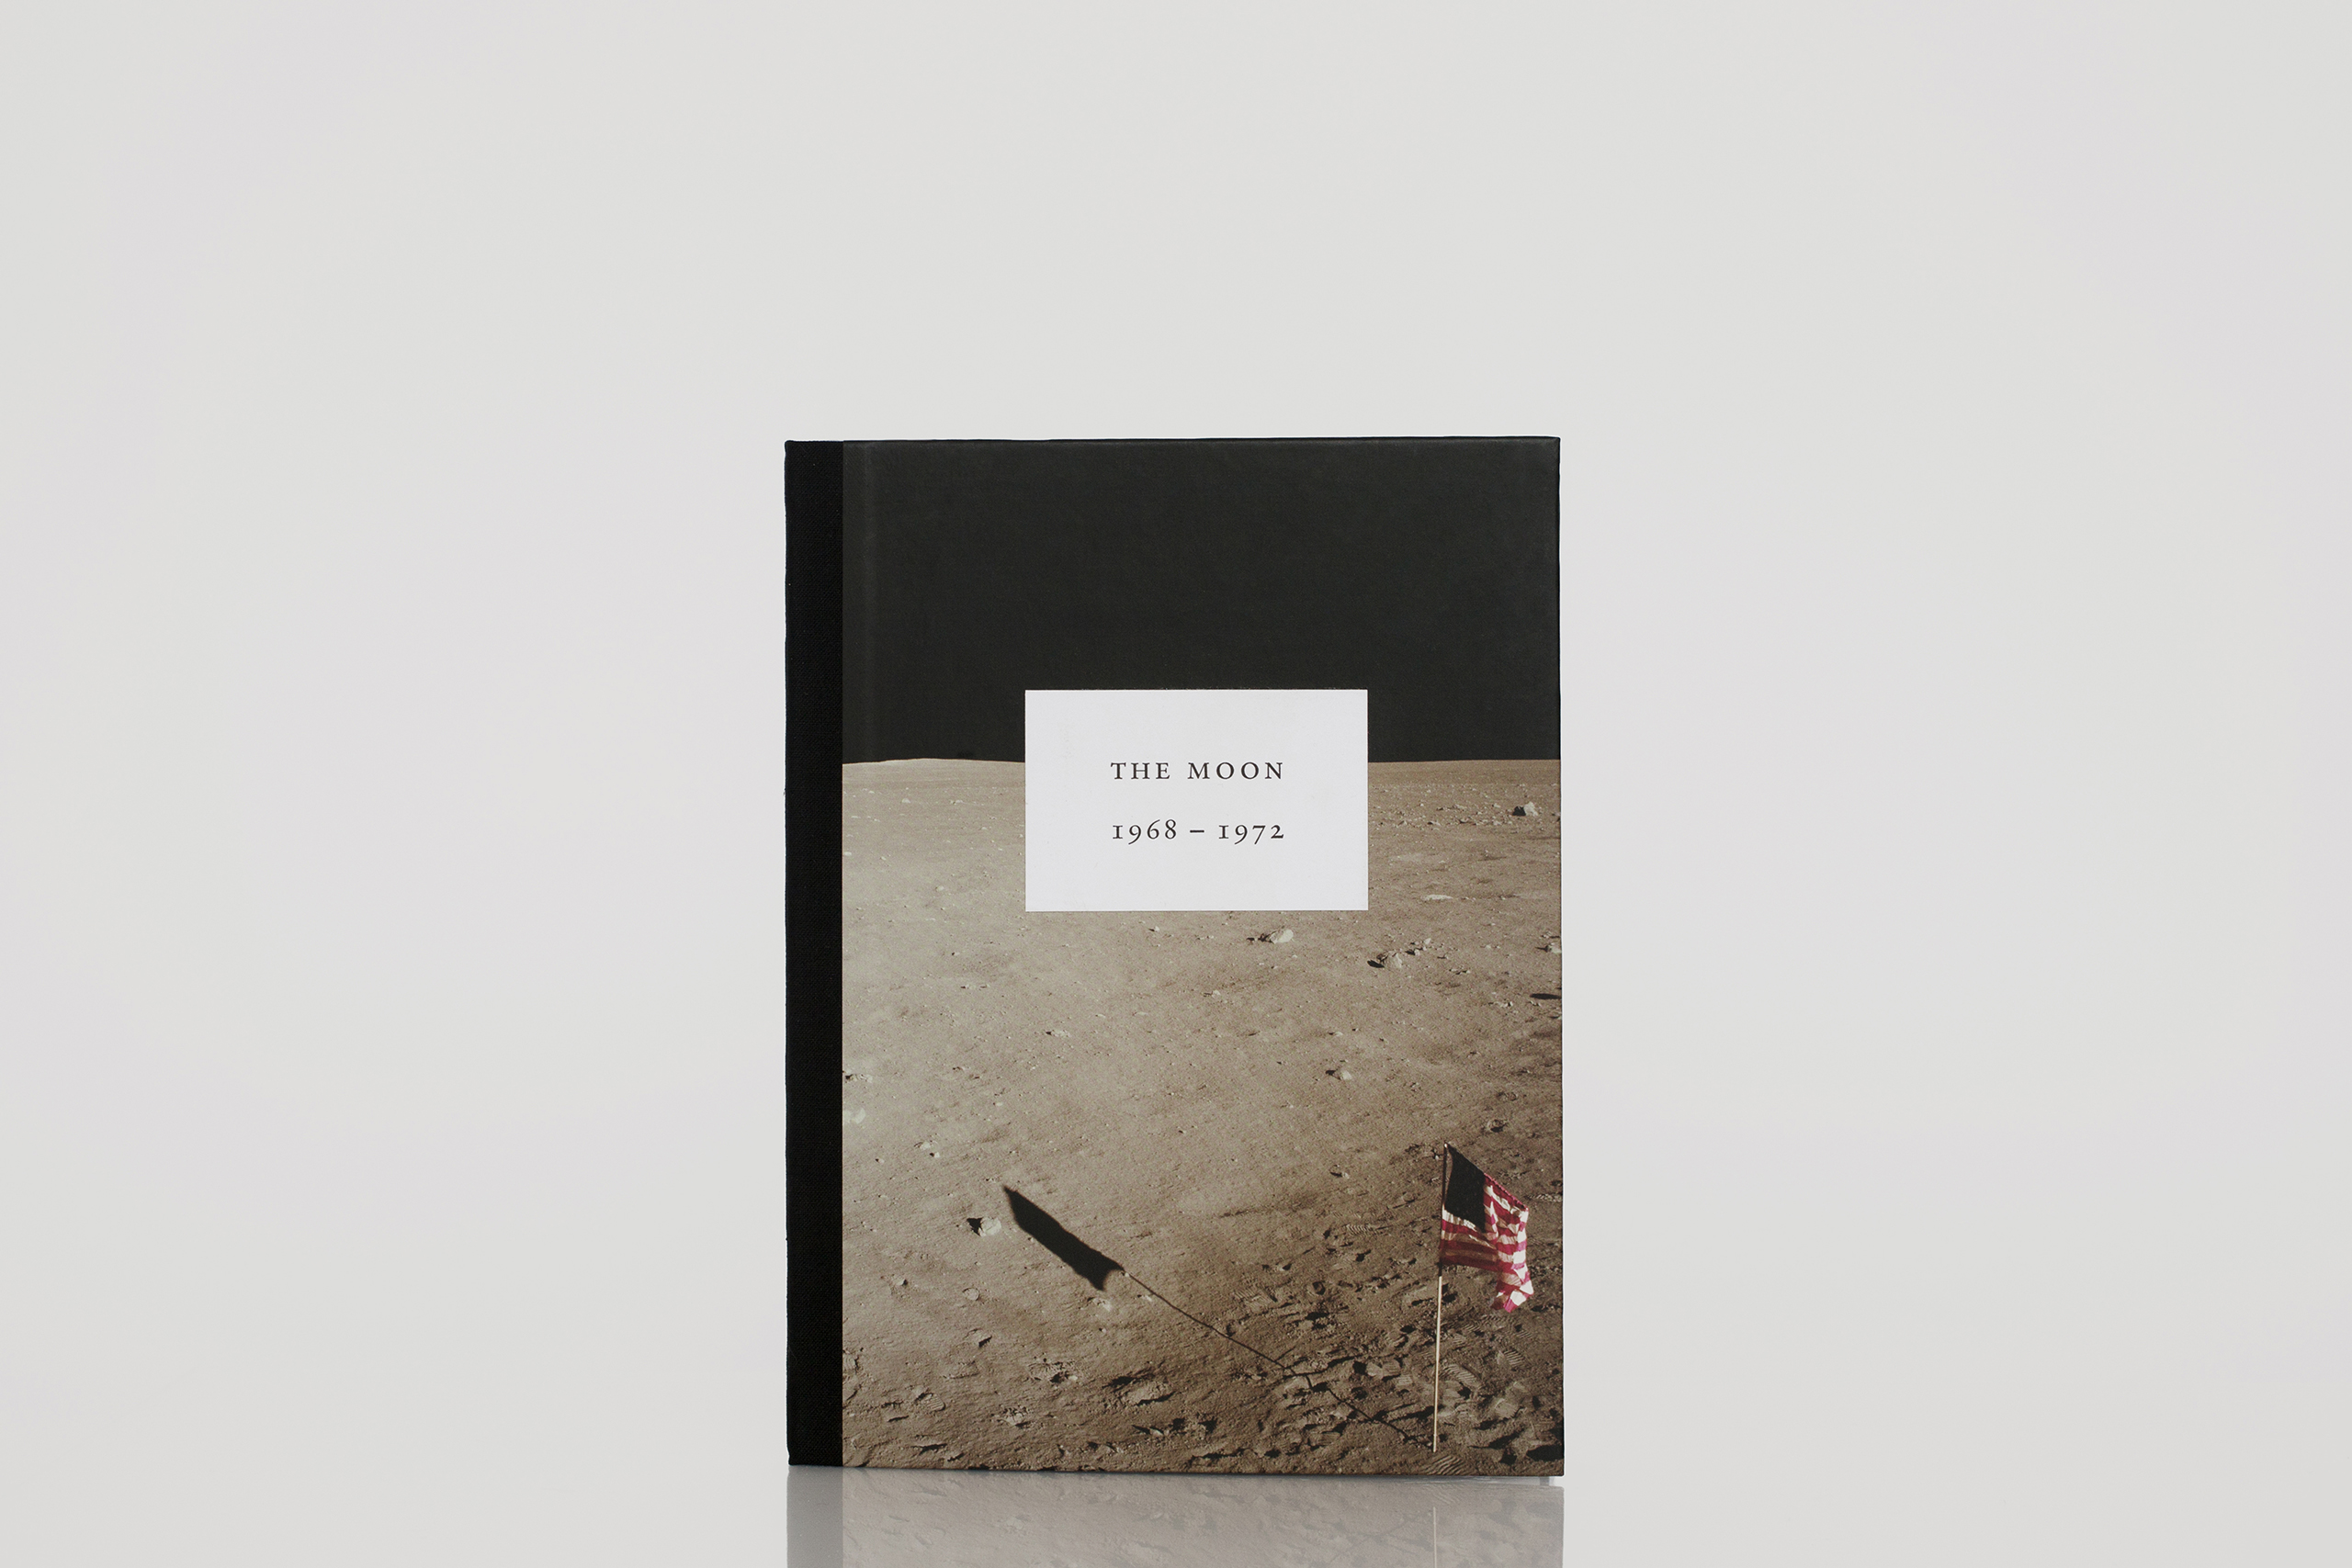 The Moon 1968-1972 by Photographs by NASAPublished by T. Adler Books